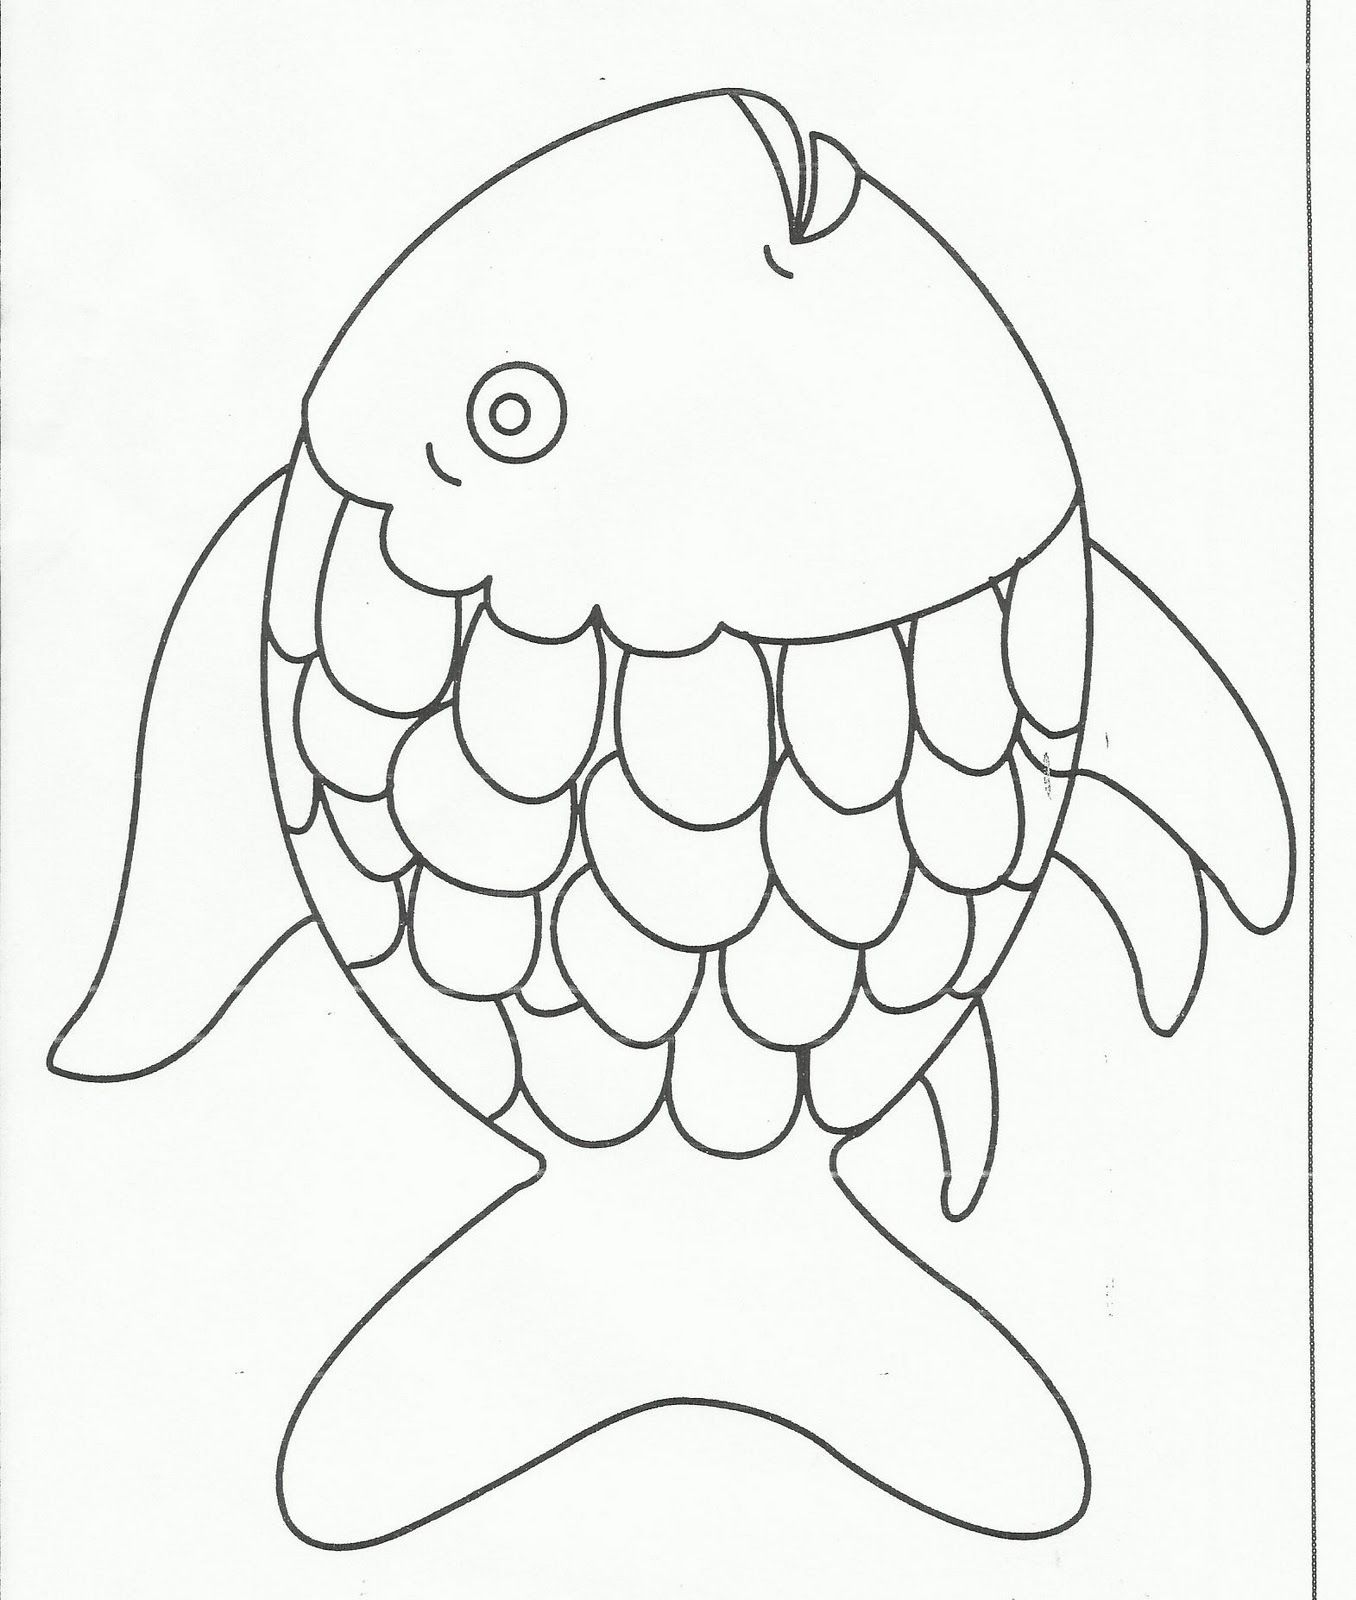 Free coloring pages fish - Rainbow Fish Coloring Page Free Large Images